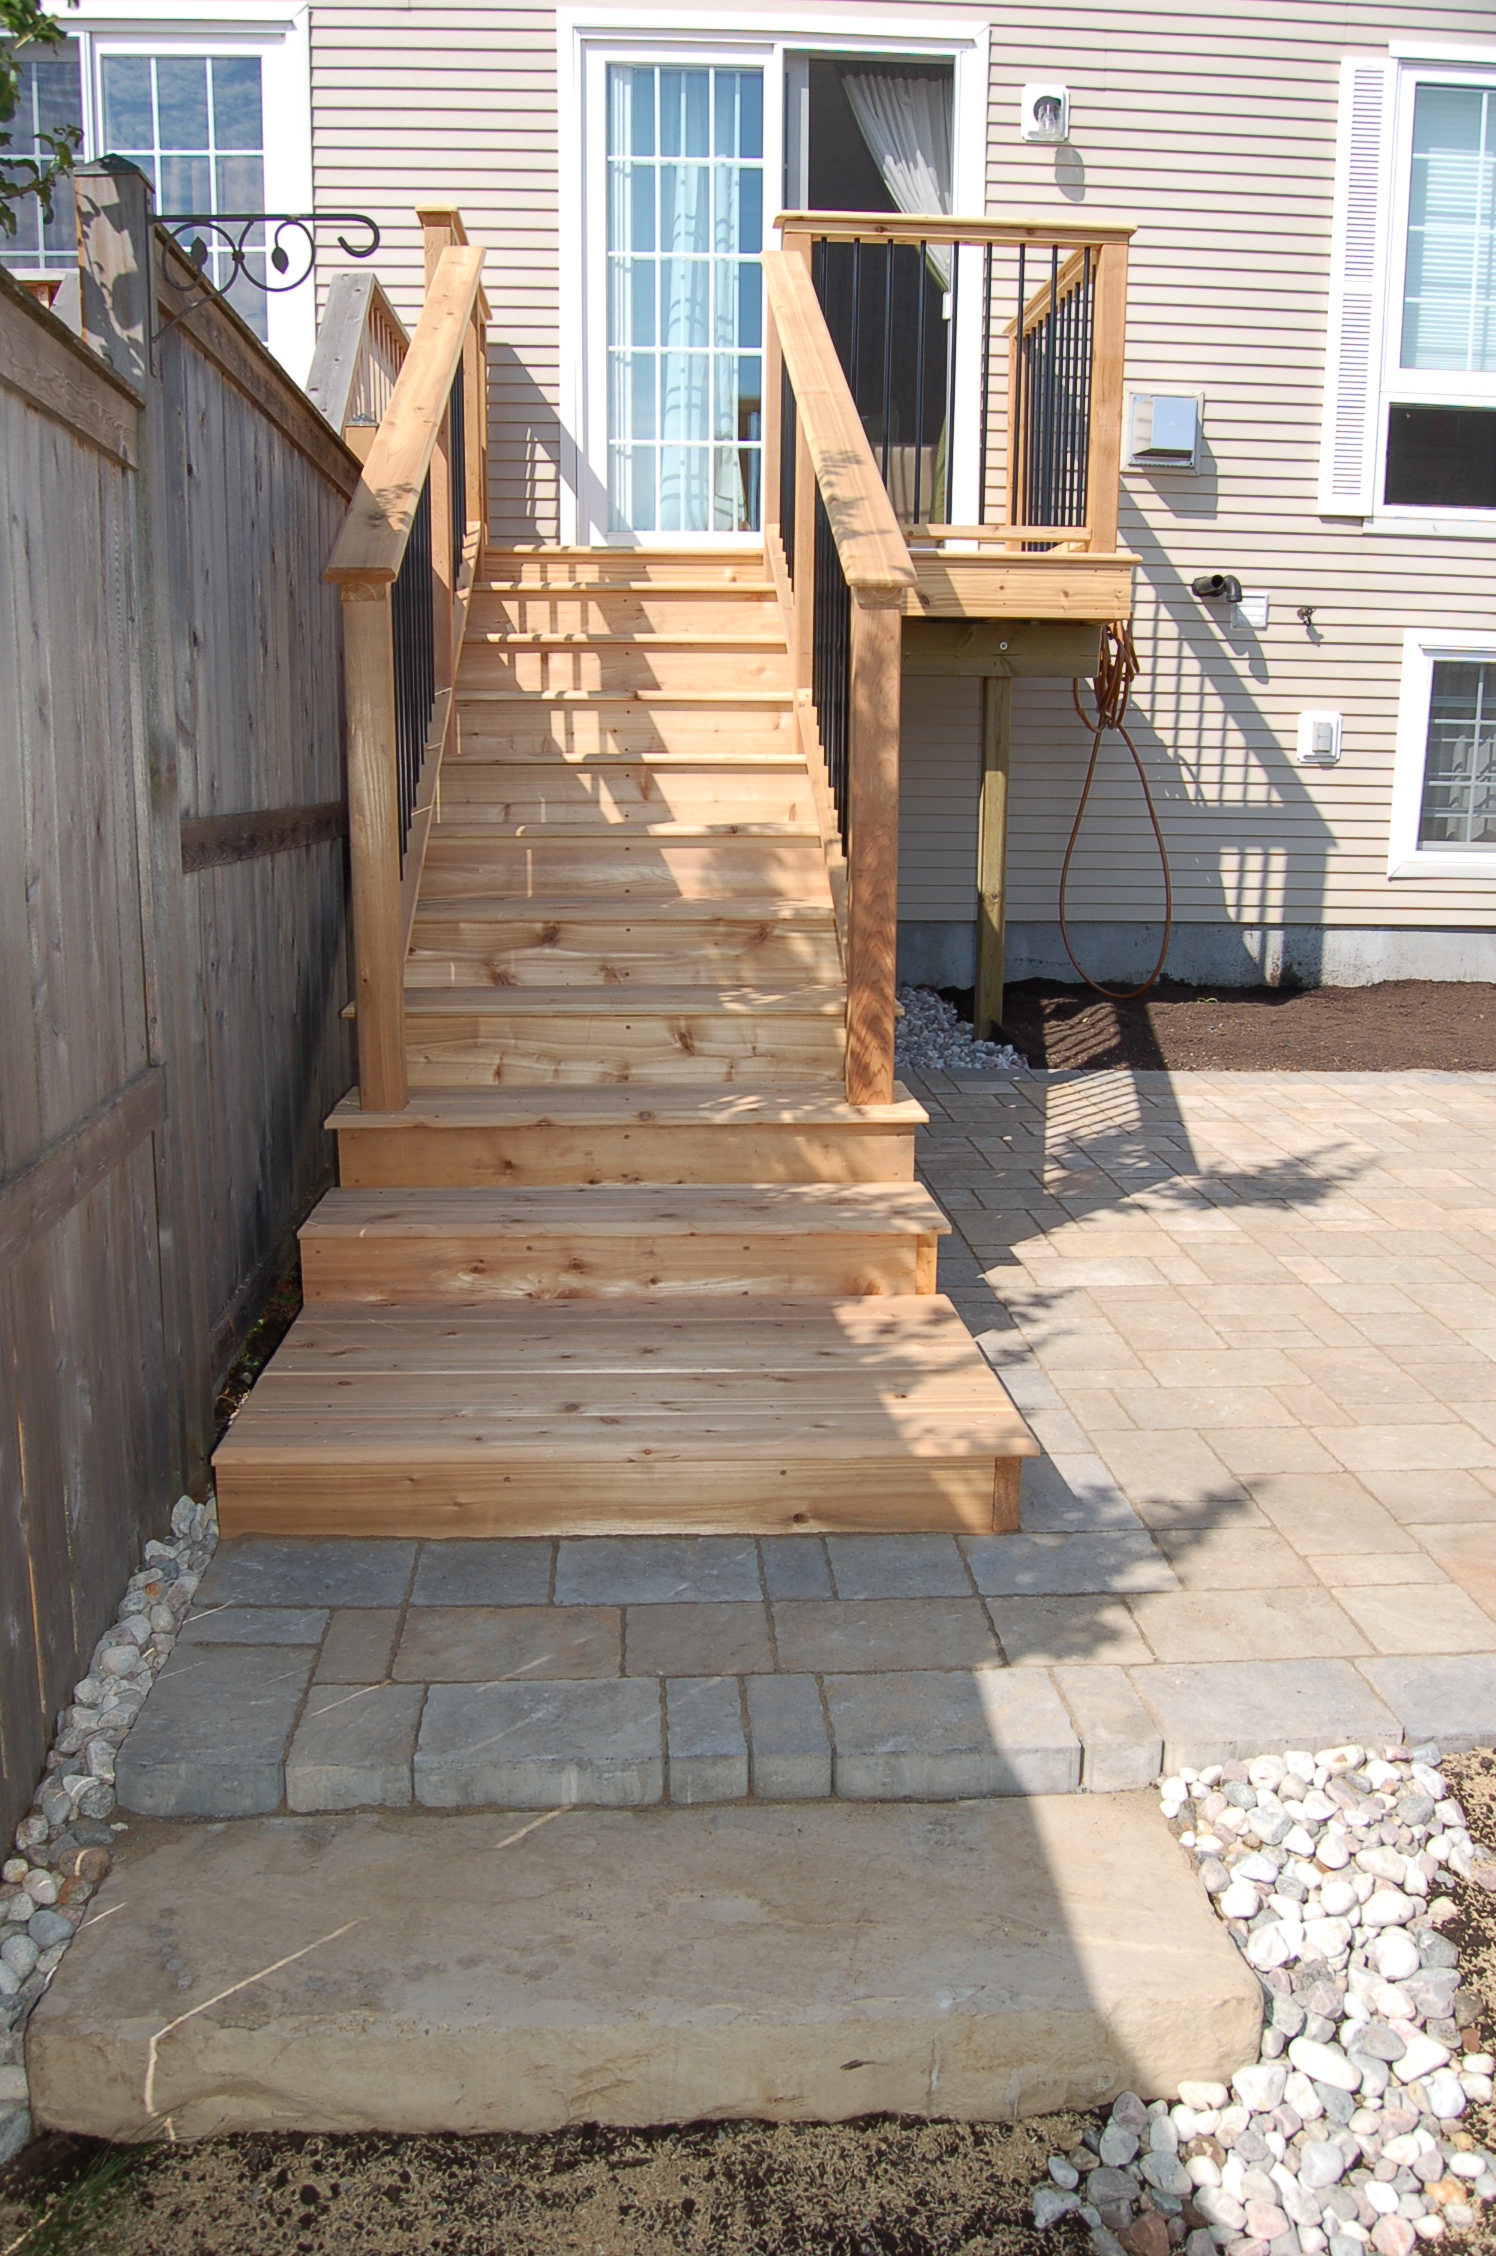 Townhouse Deck Steps and Brick Patio